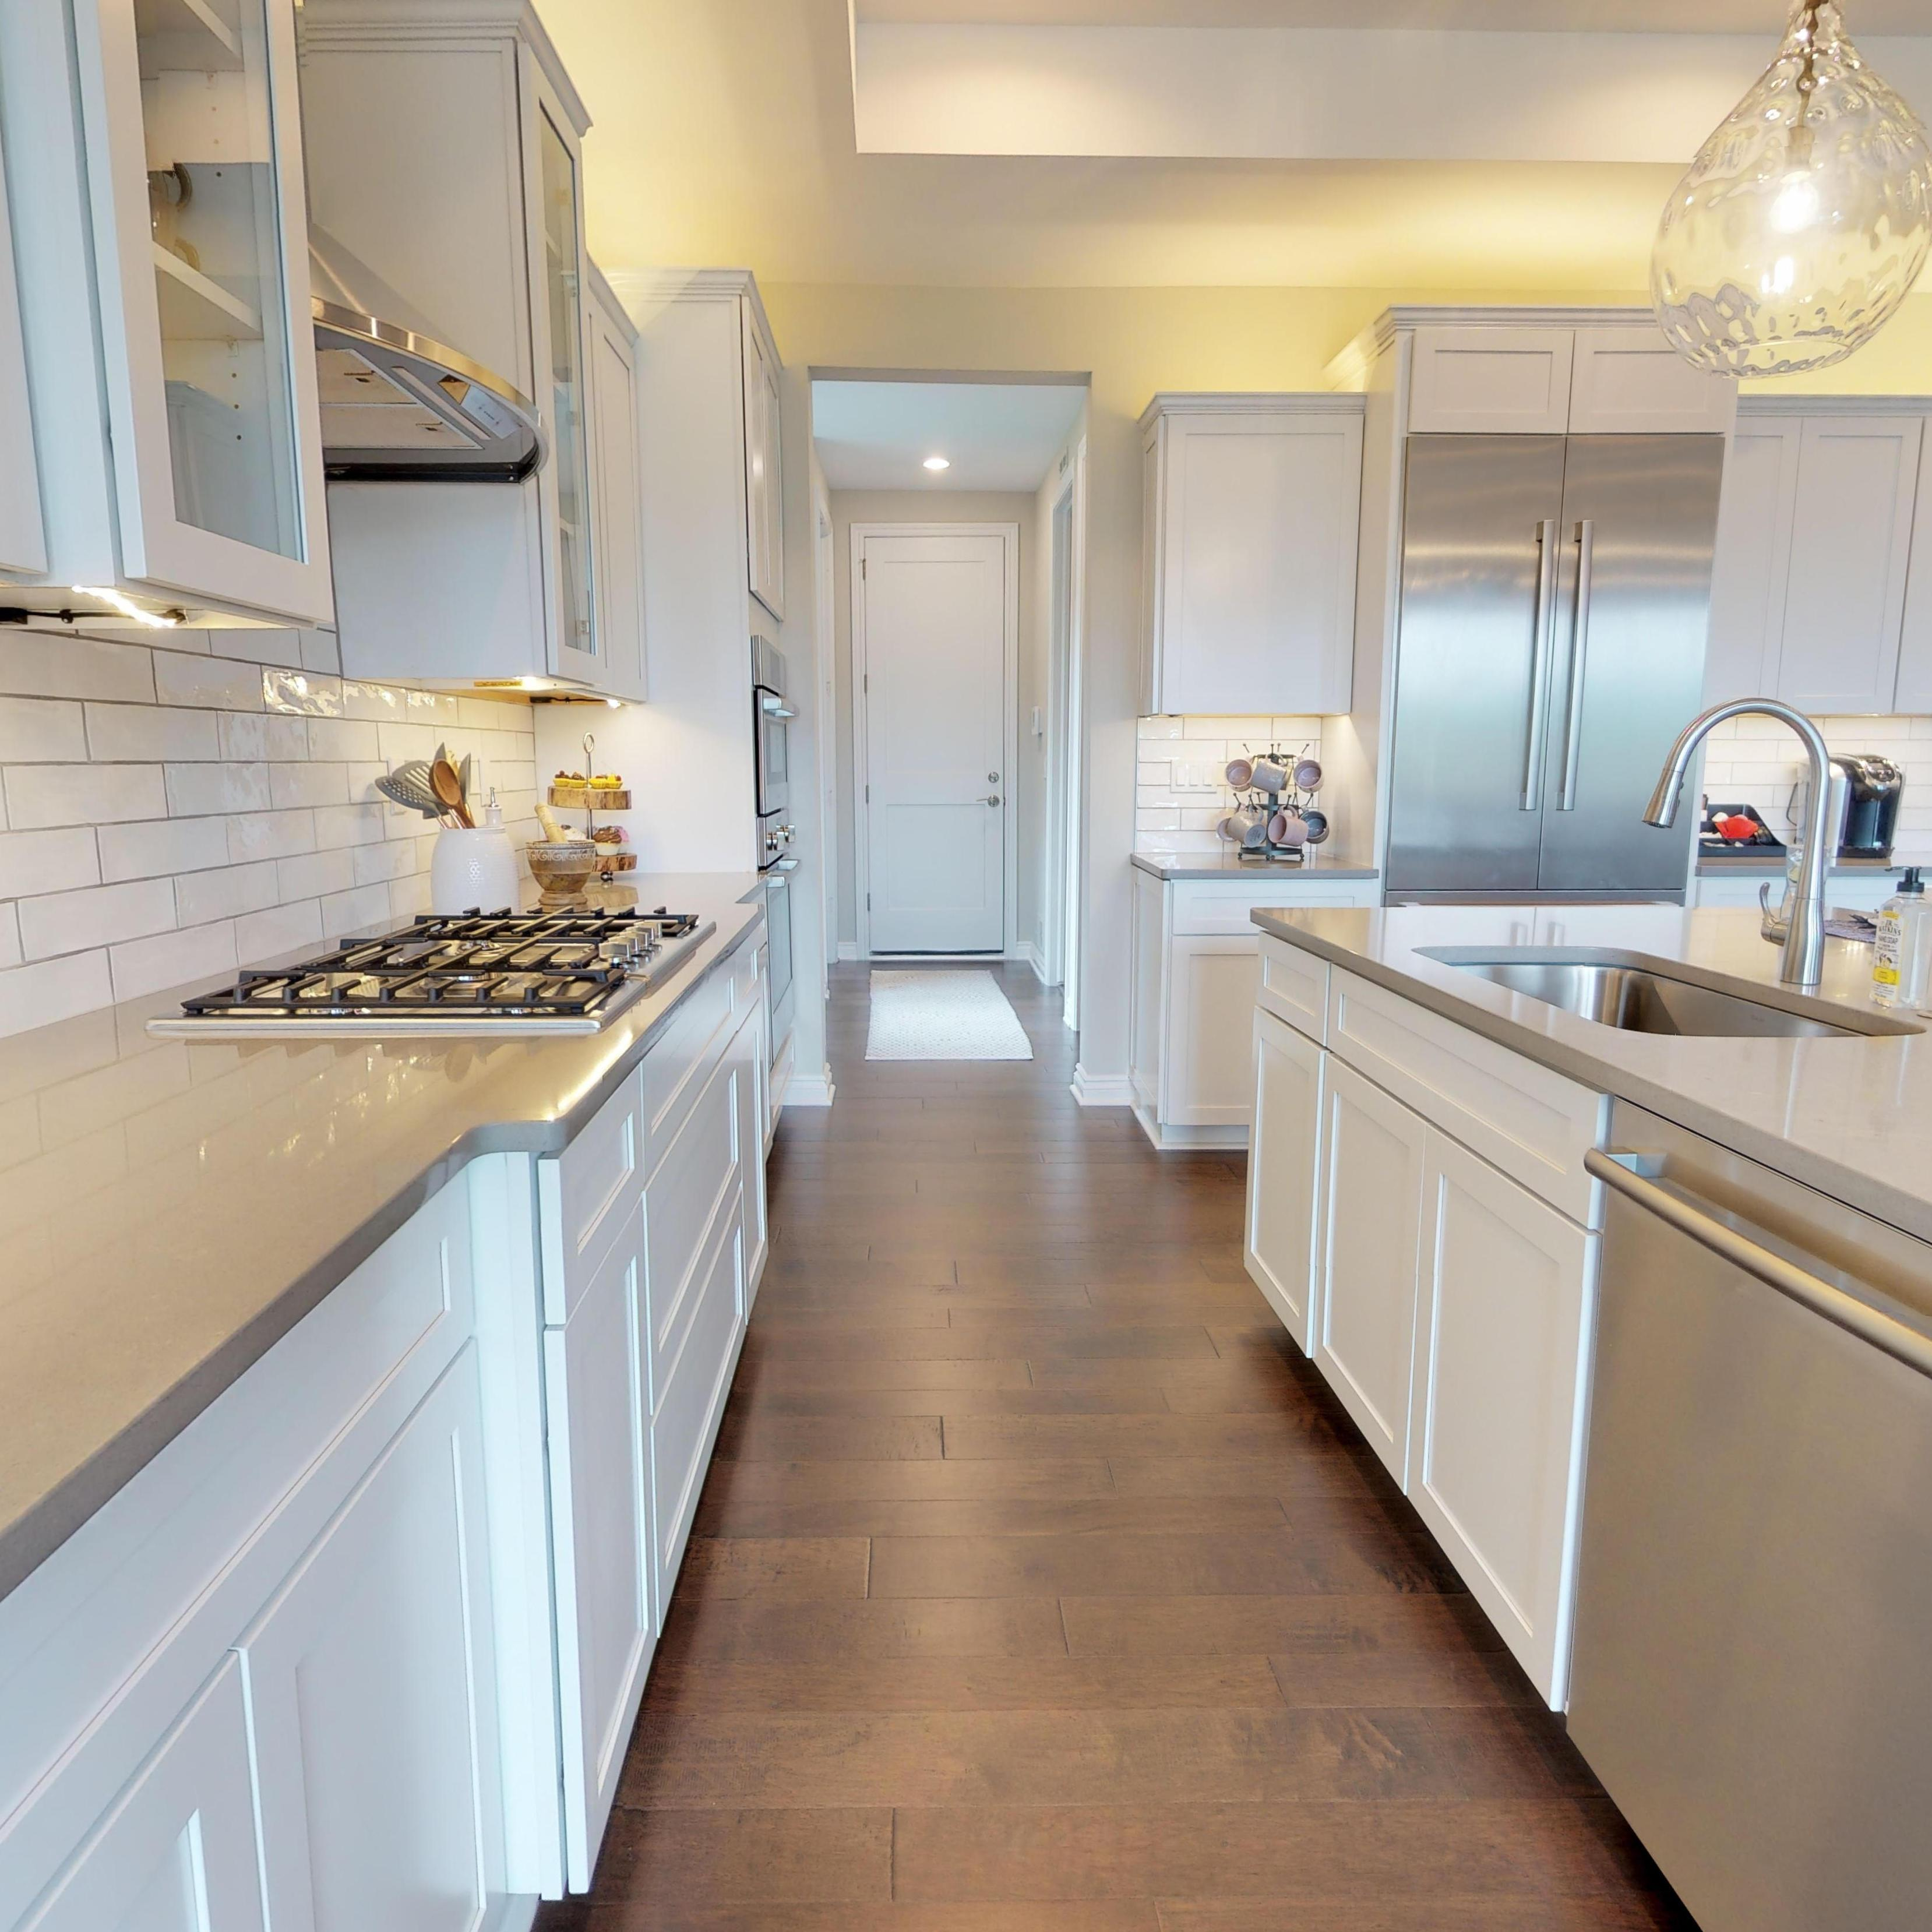 Kitchen featured in The Charlevoix By AP Builders in Detroit, MI